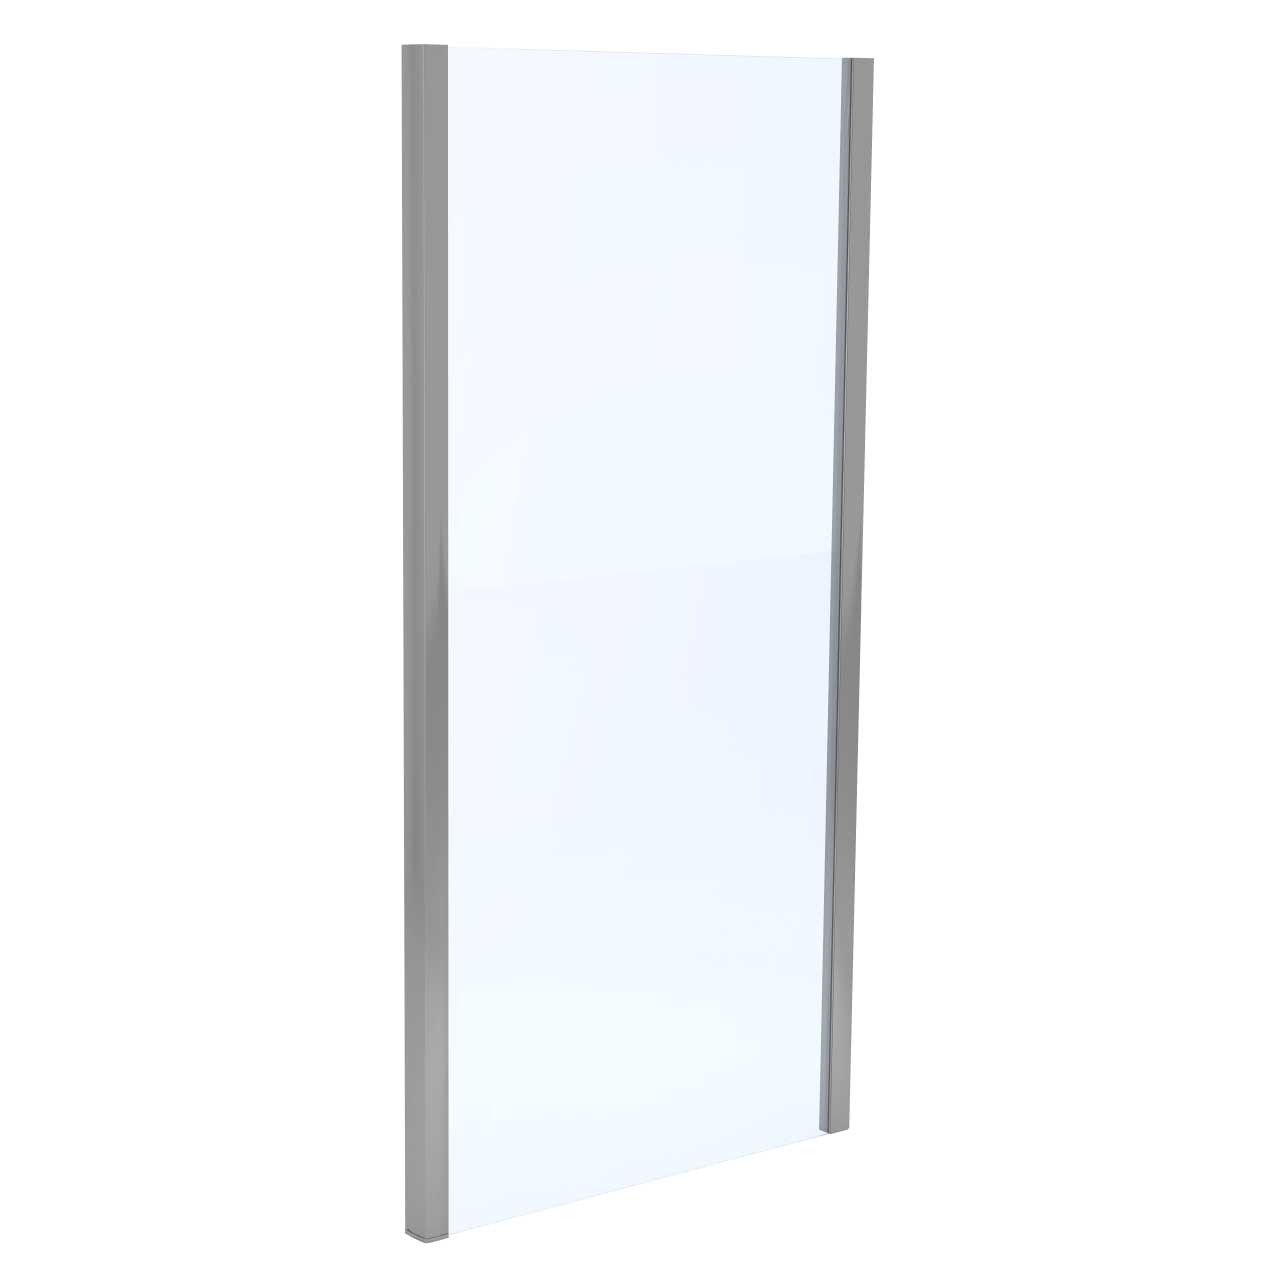 Series 6 1400mm x 900mm Double Sliding Door Shower Enclosure